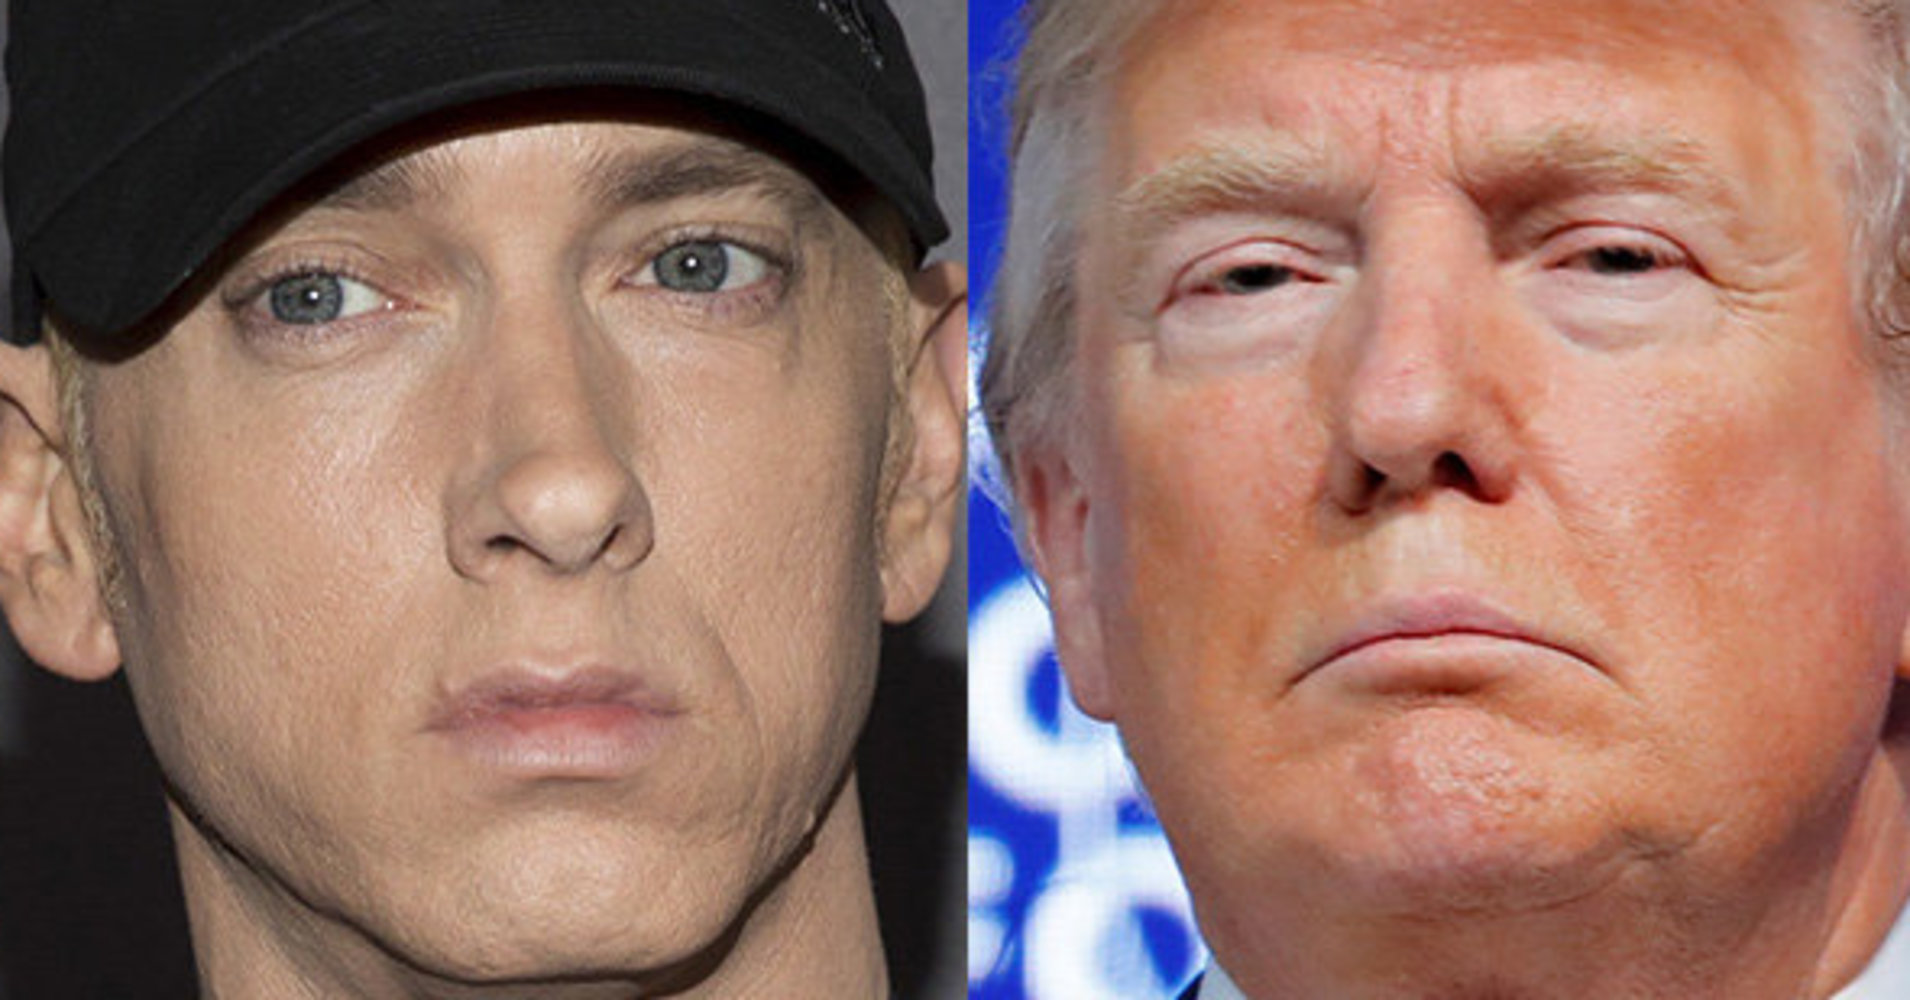 Eminem: 'A F**king Turd Would Have Been Better As A President' Than Donald Trump